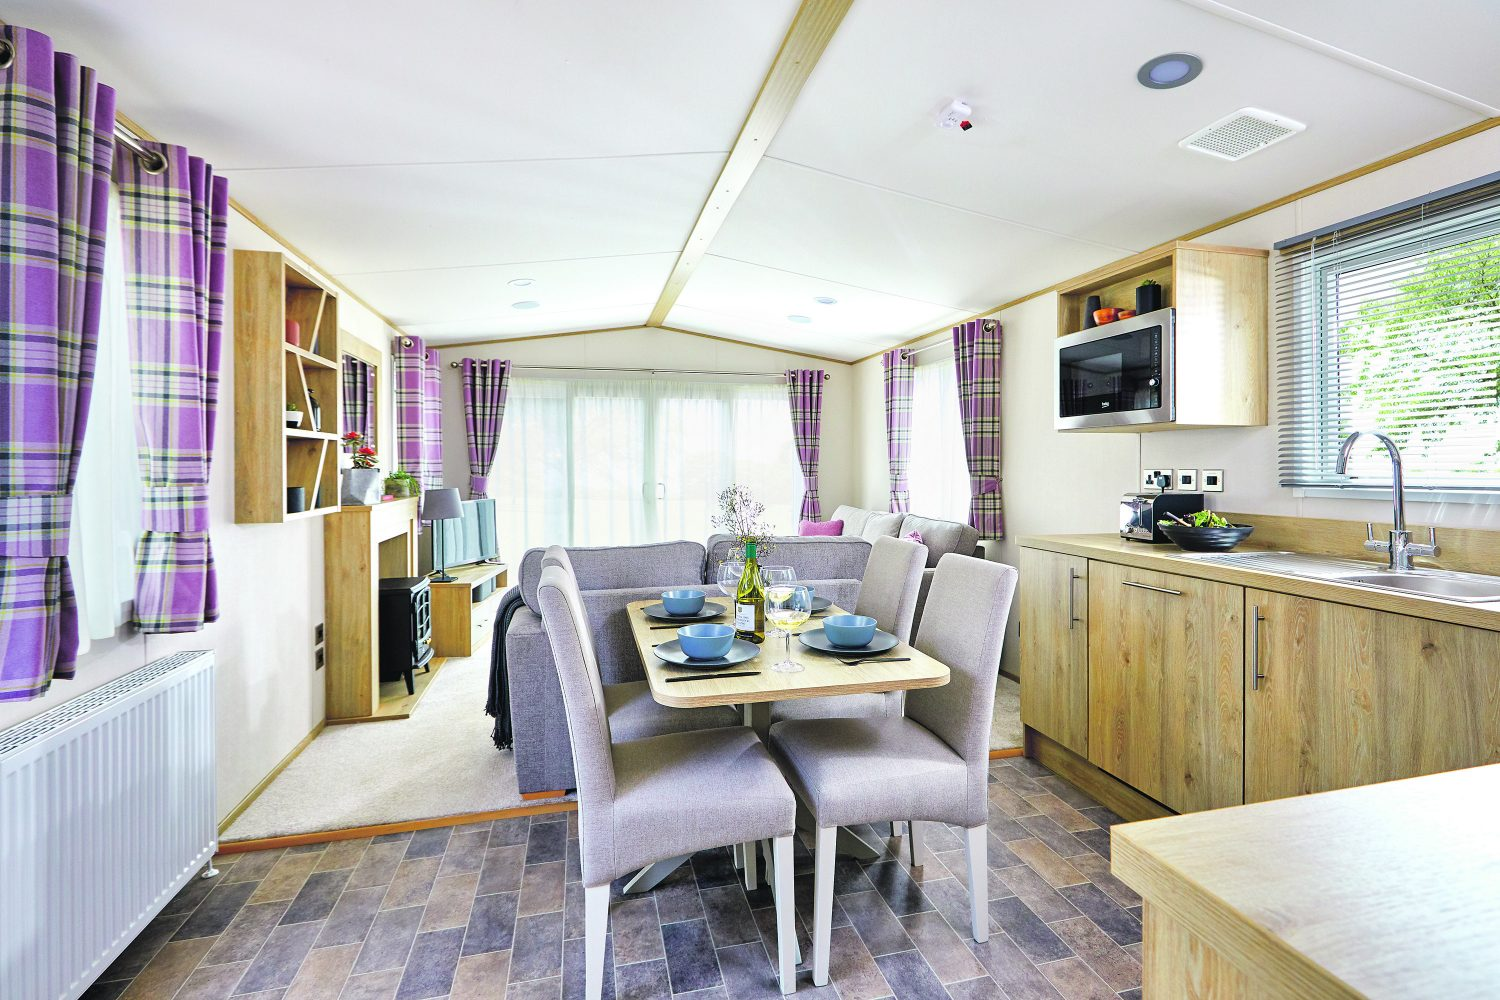 New ABI Holiday Home for Sale